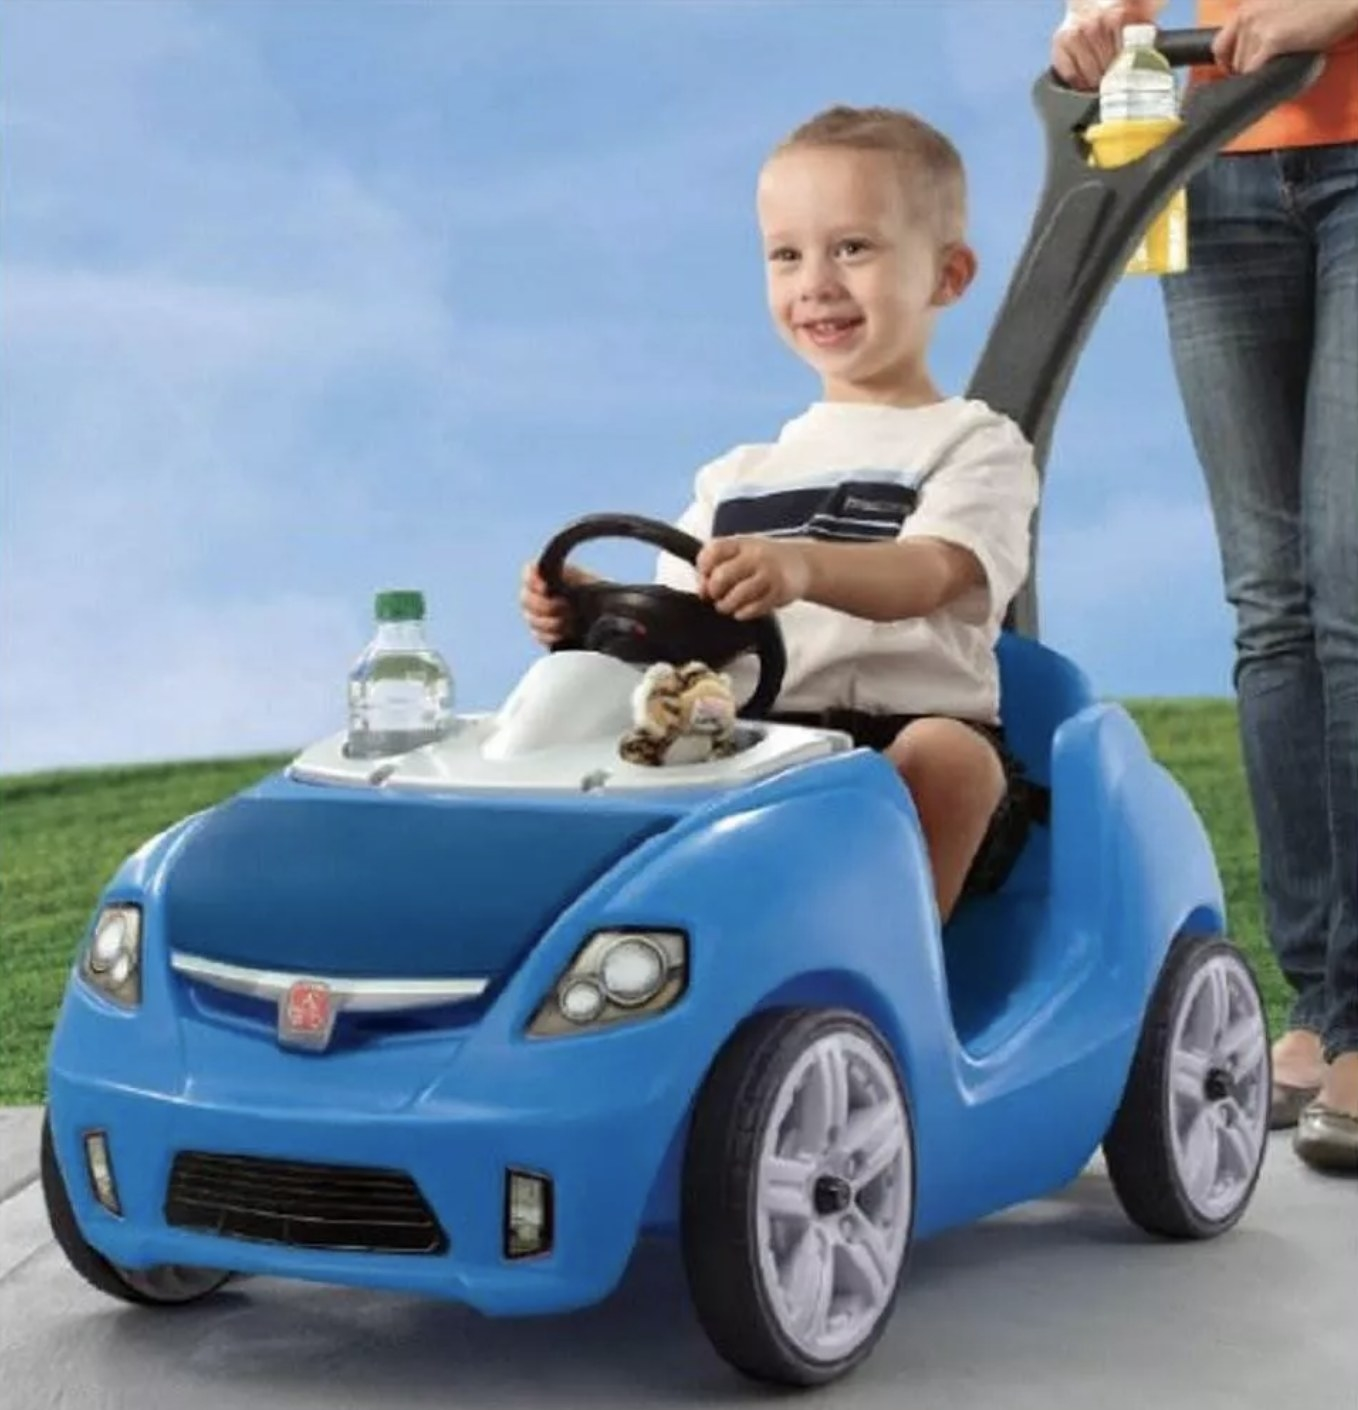 Person is pushing child in a blue push car